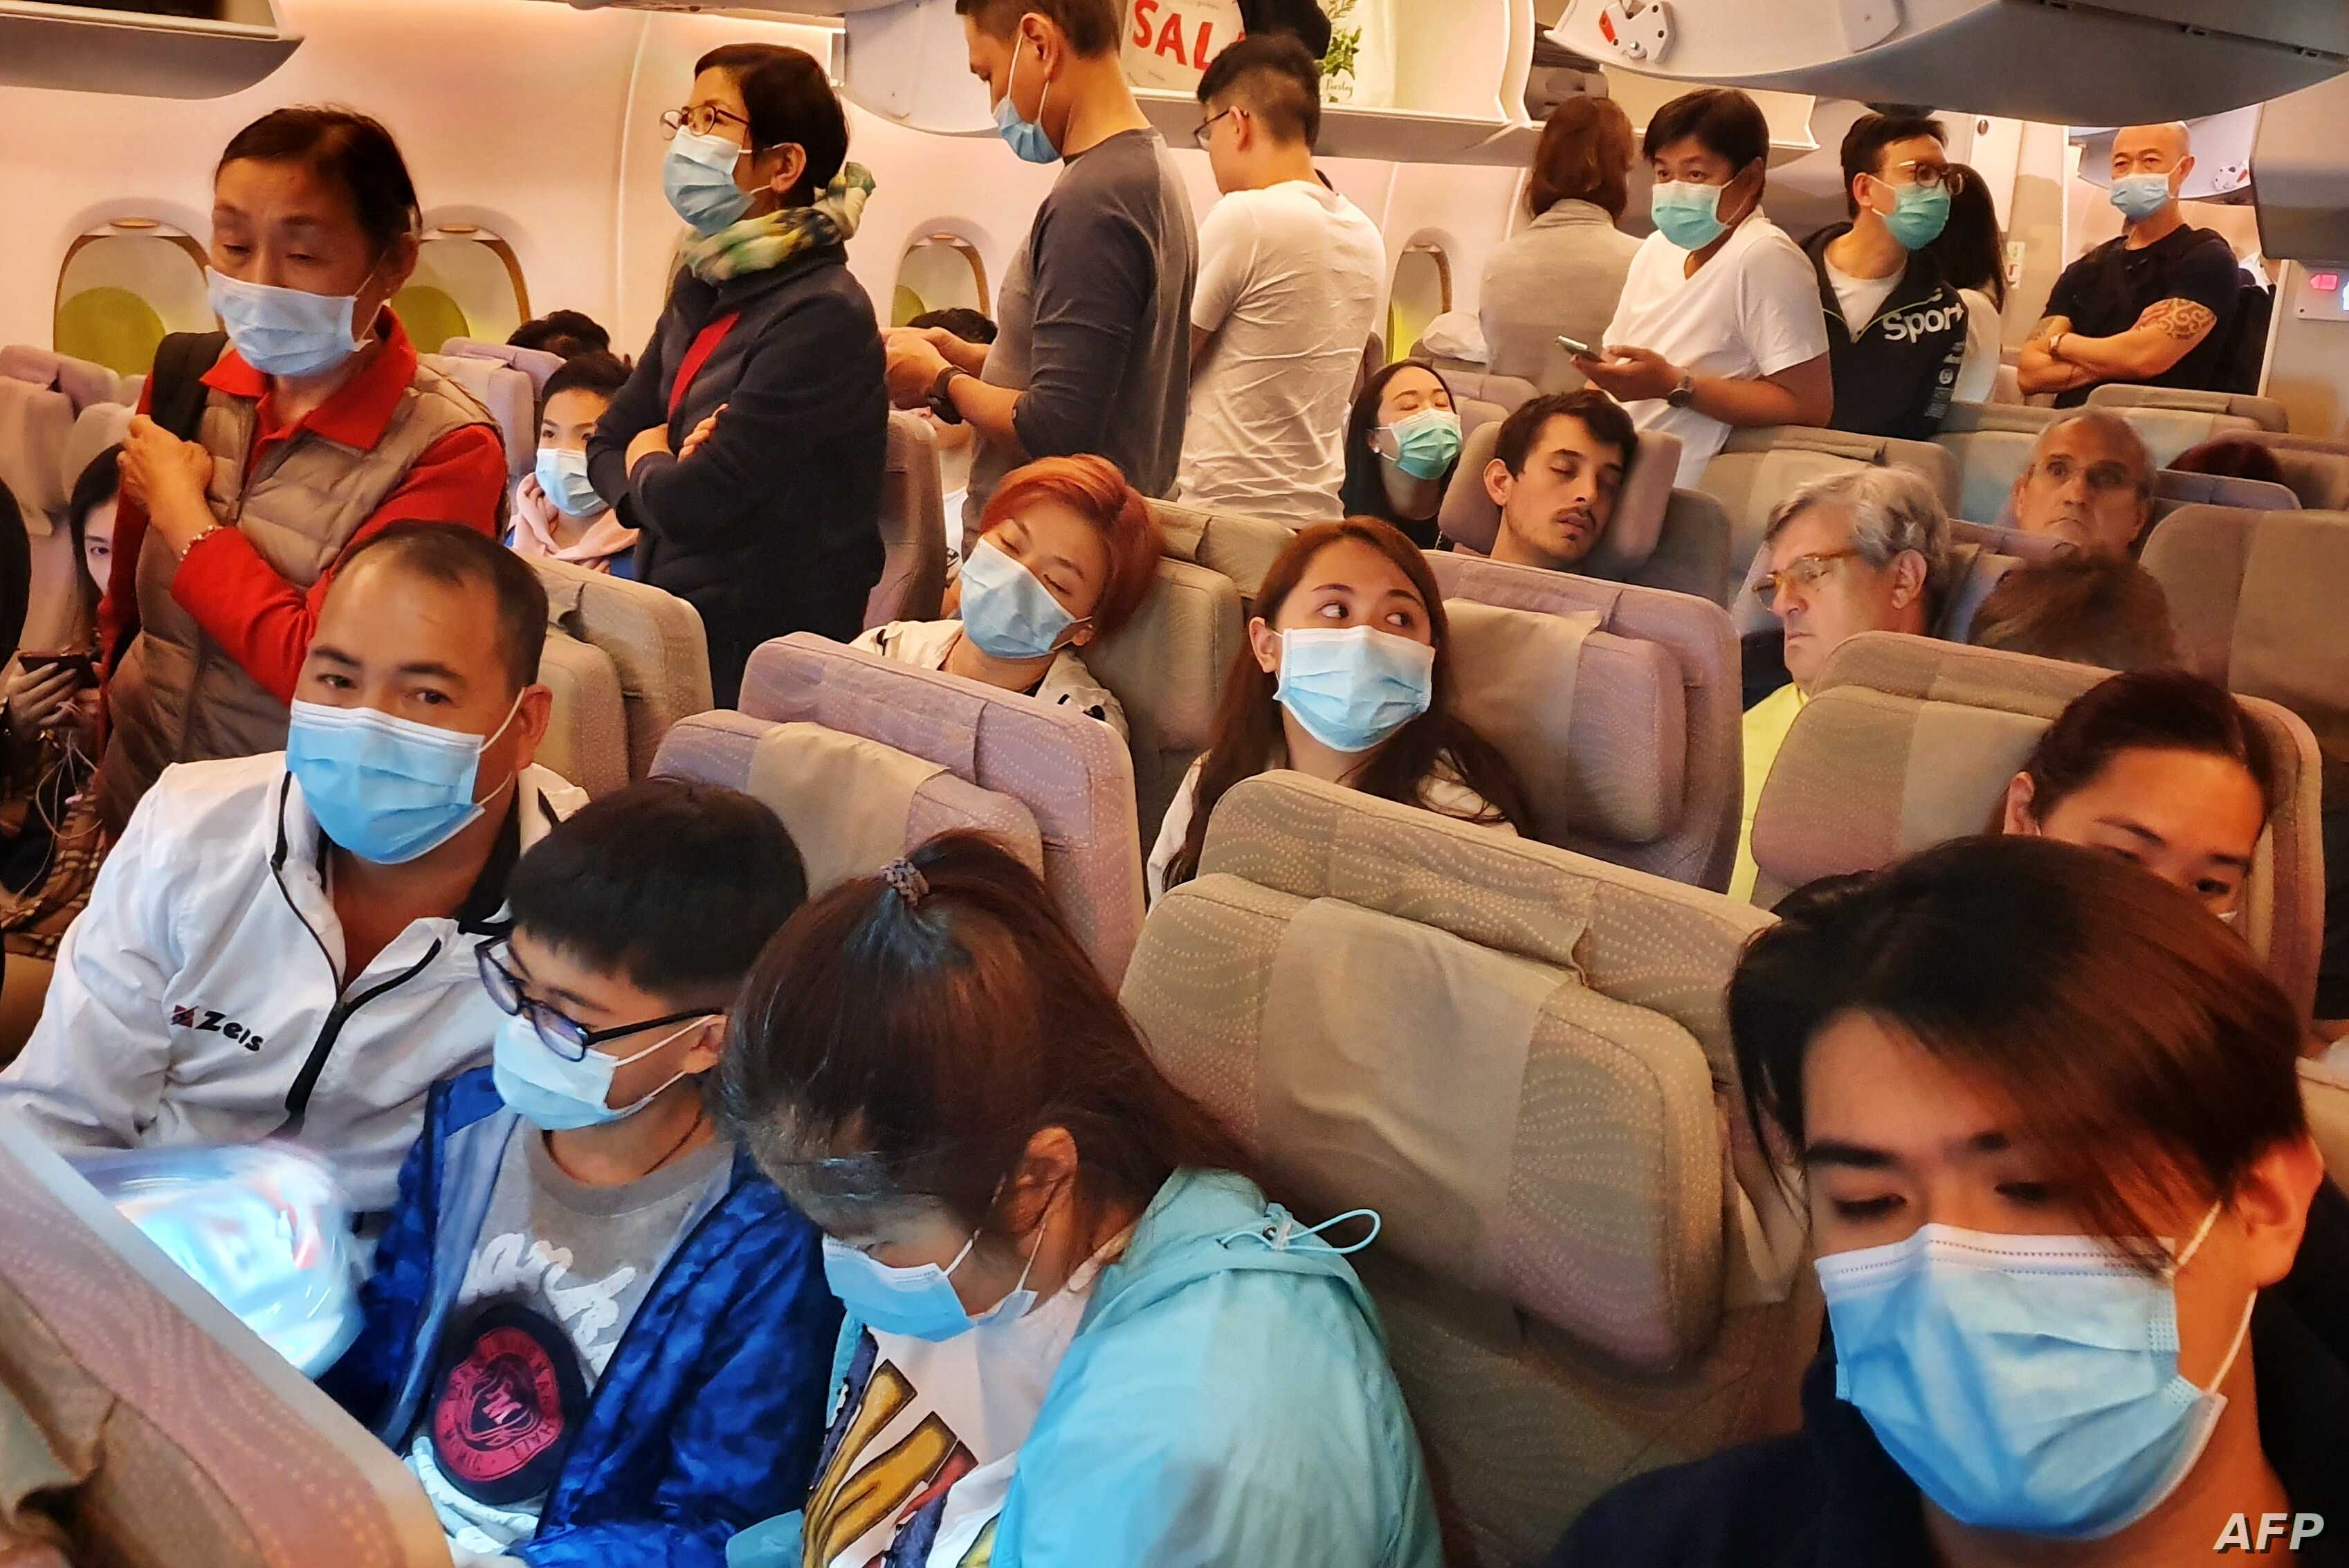 Dubai To Screen All Passengers From China Amid Virus Outbreak